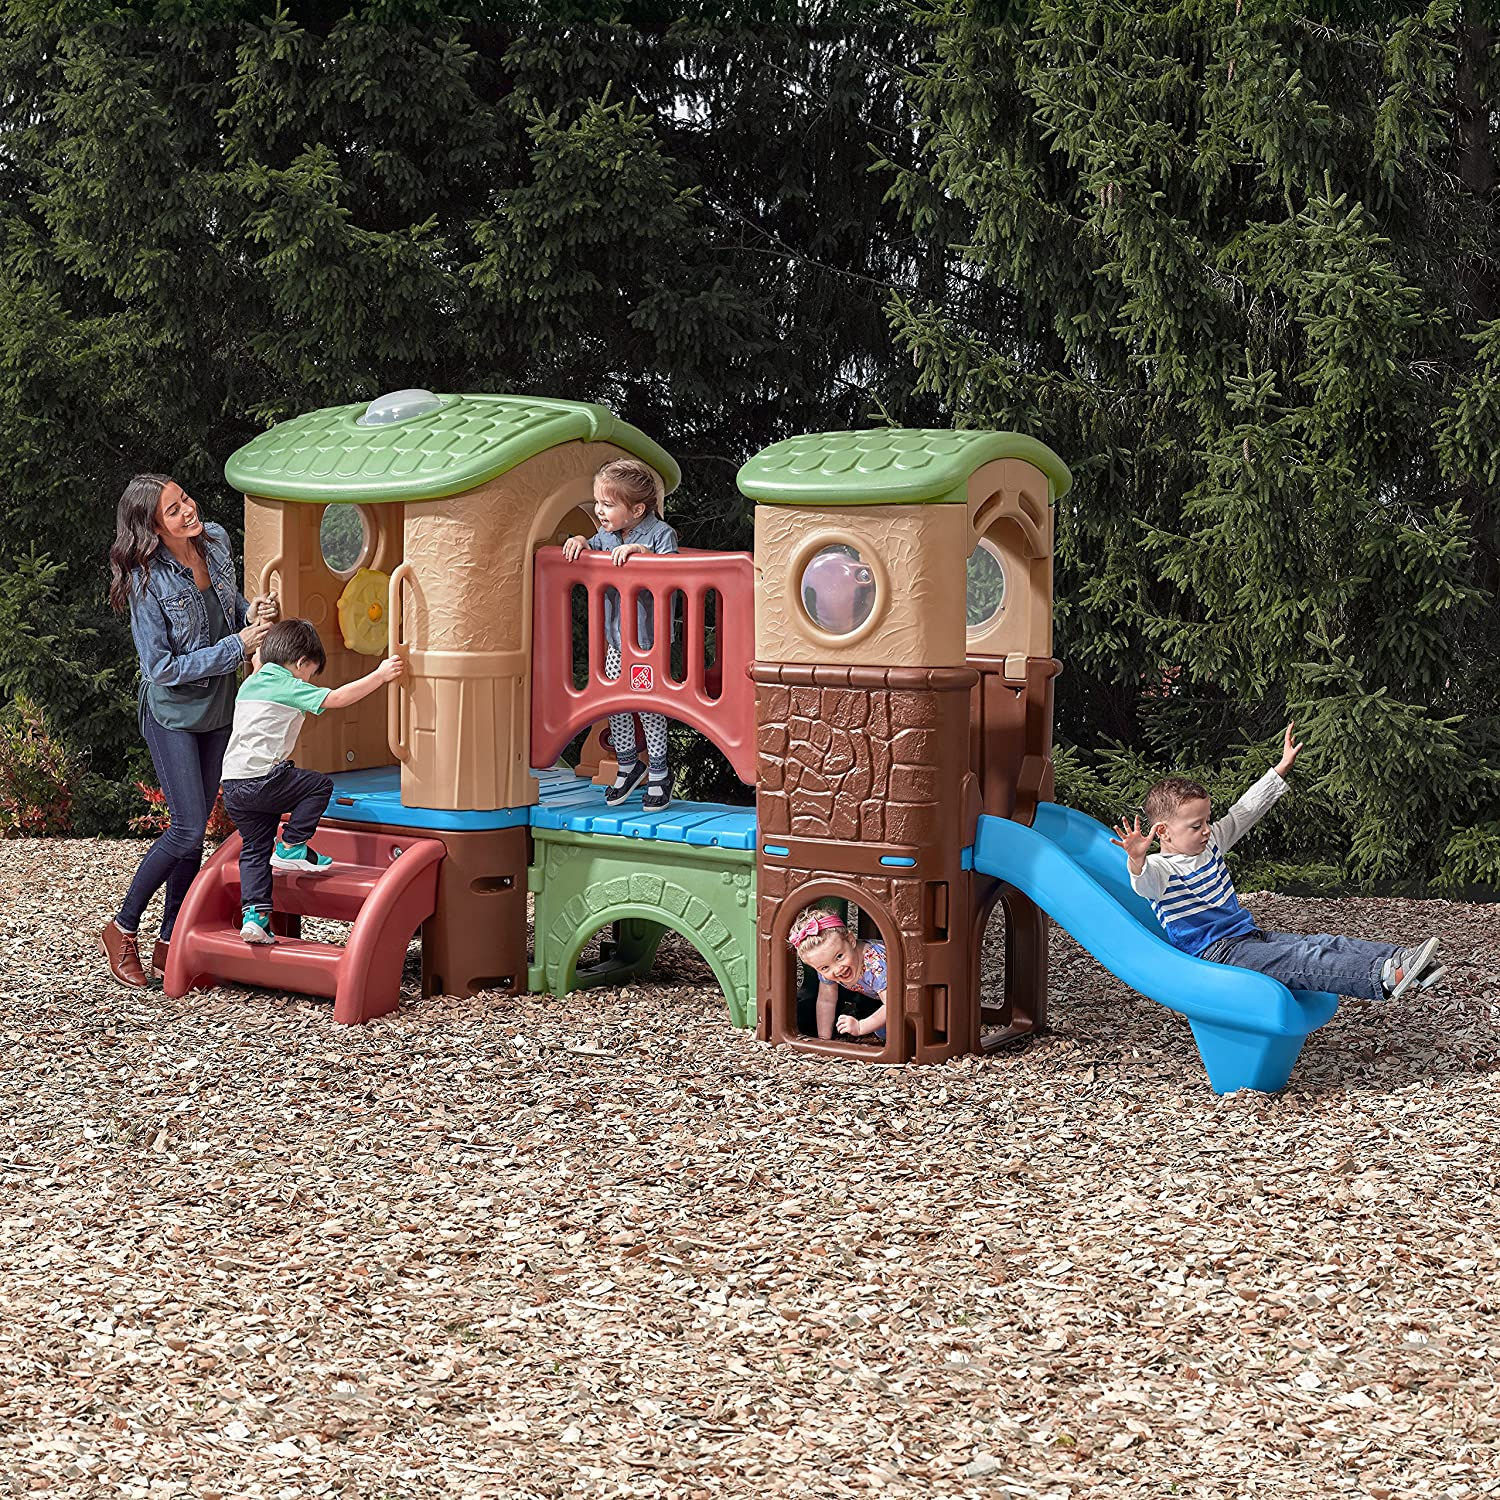 Top 11 Best Outdoor Playsets For Toddlers 2020 Reviews 5